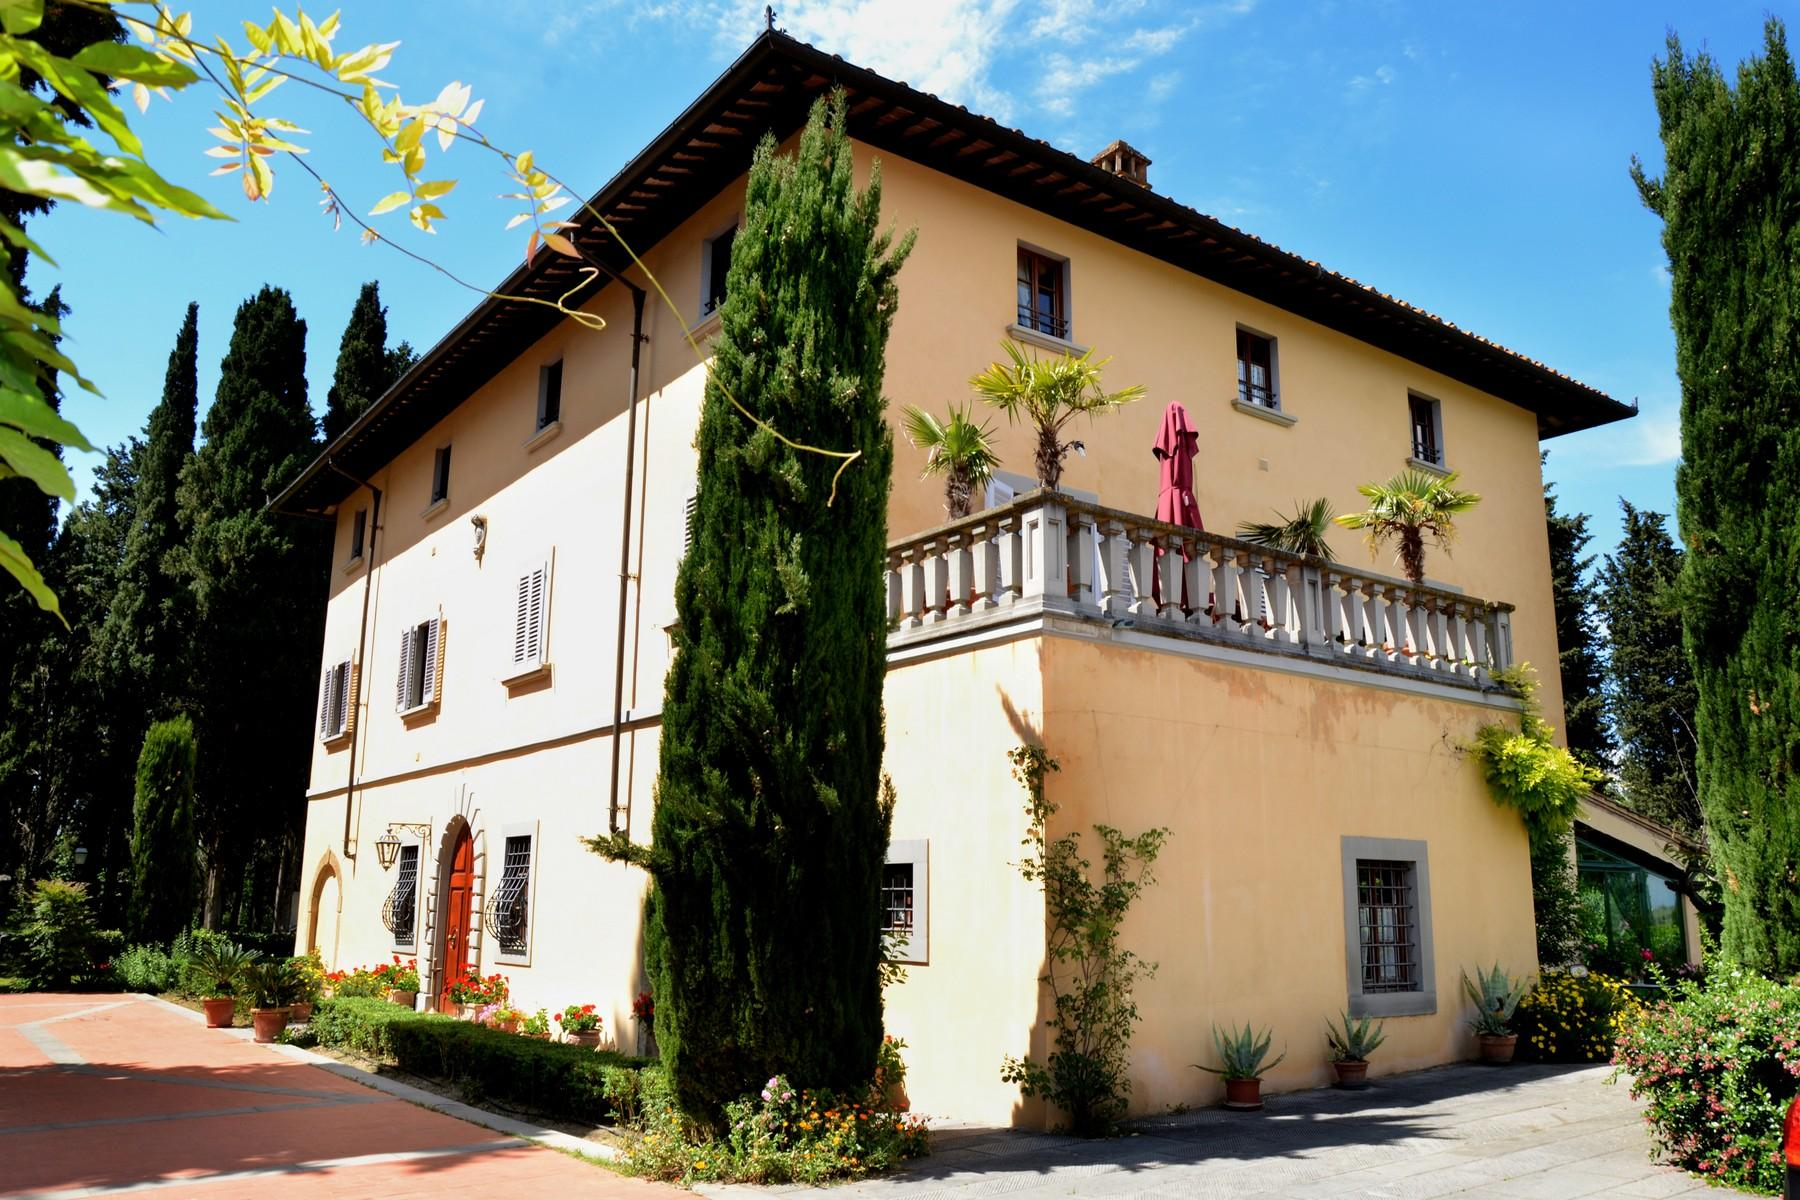 Charming holiday resort in the heart of Tuscany - 1